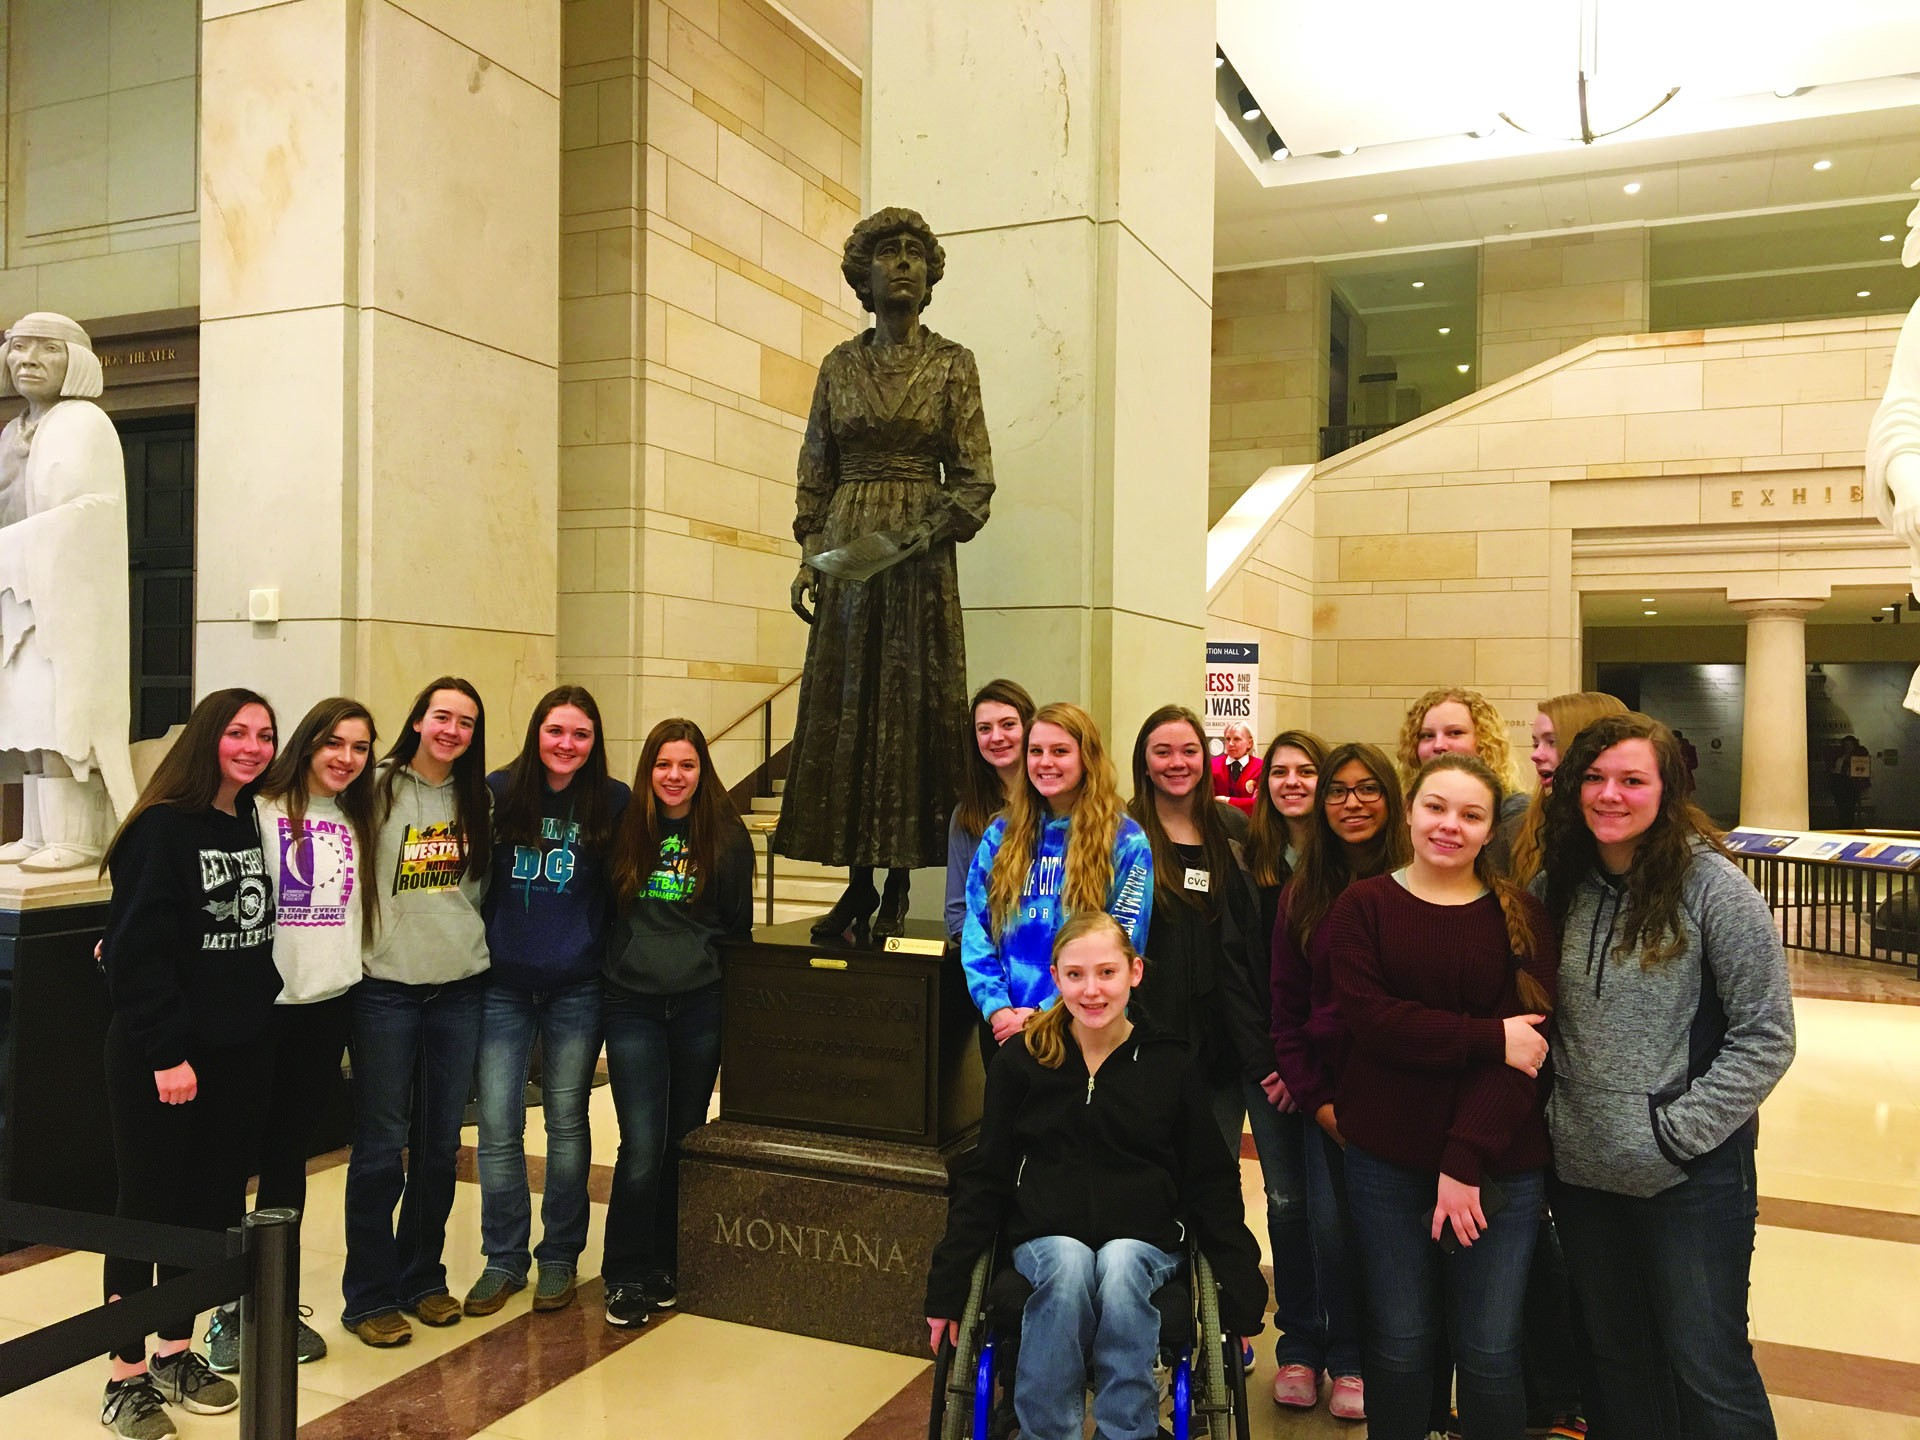 Some of the CCDHS students pose with a statue of Jeannette Rankin. Rankin was a politician and women's rights advocate from Montana. She was the first woman to hold federal office in the United States.